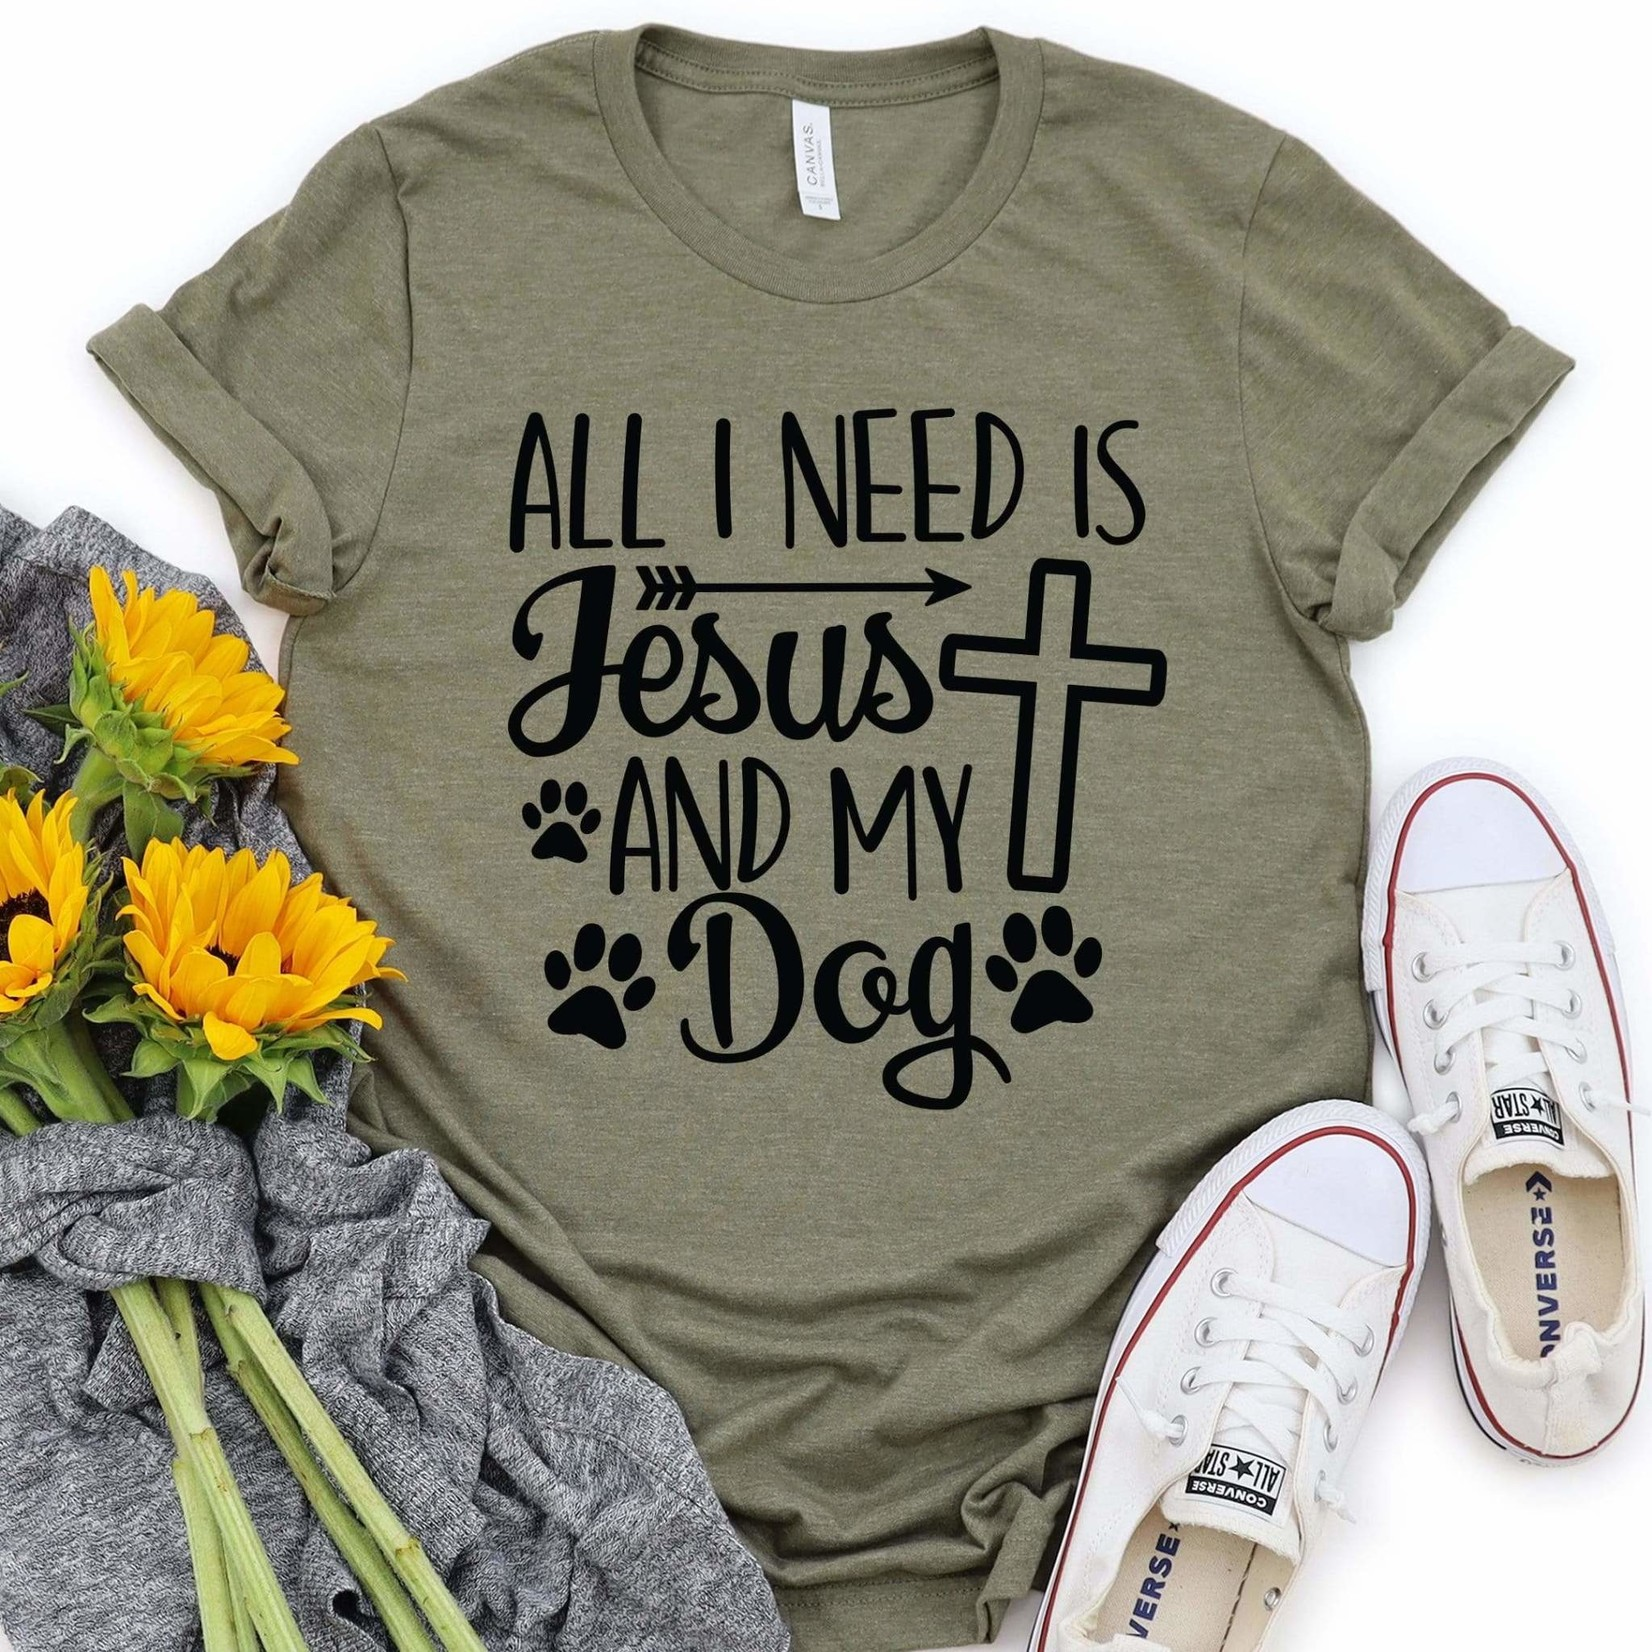 All I Need Is Jesus and My Dog Tshirt